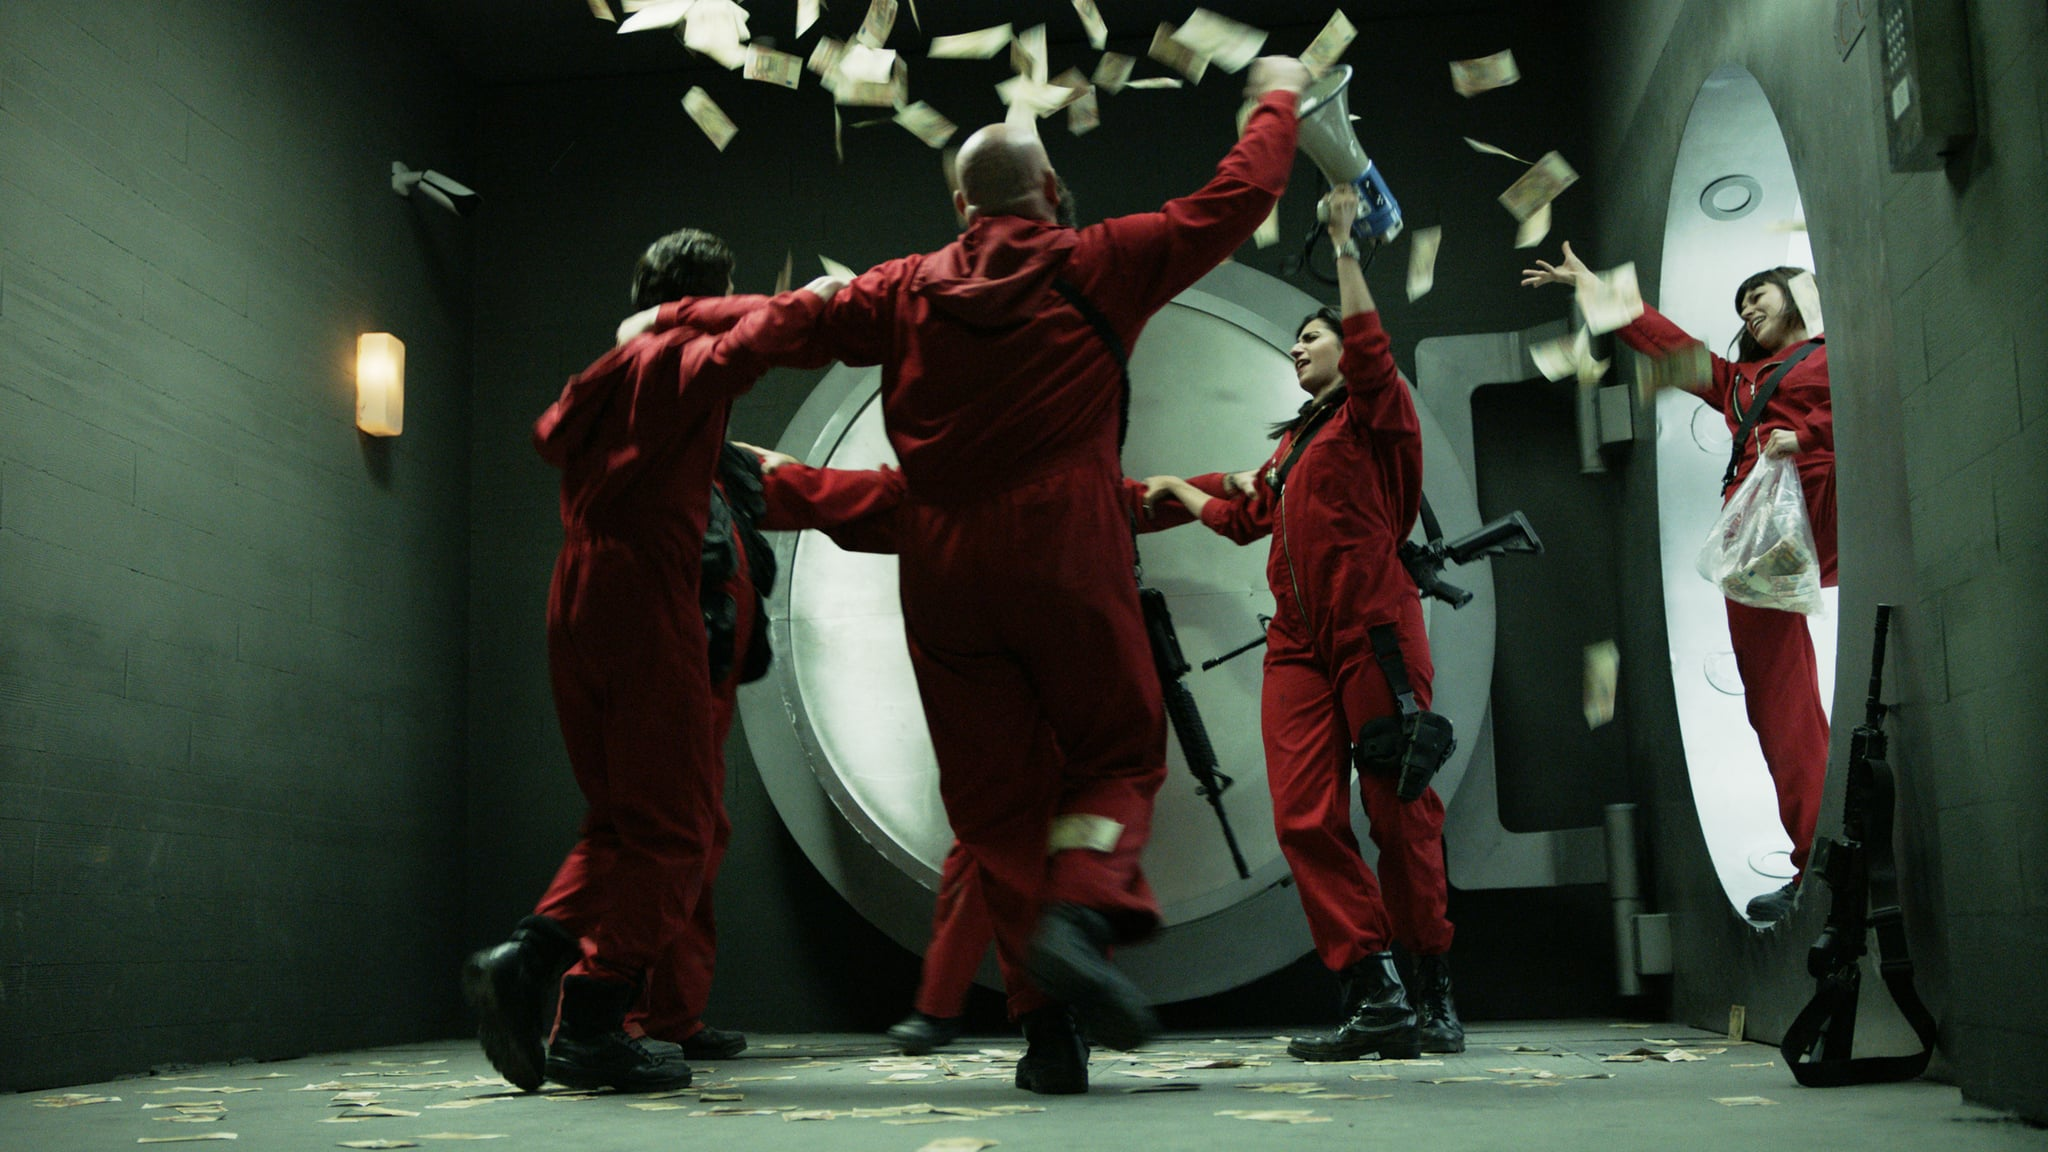 MONEY HEIST, (aka LA CASA DE PAPEL), 'Bella Ciao', (Season 1, ep. 115, aired in US on April 6, 2018). photo: Netflix/Antena 3 / Courtesy: Everett Collection